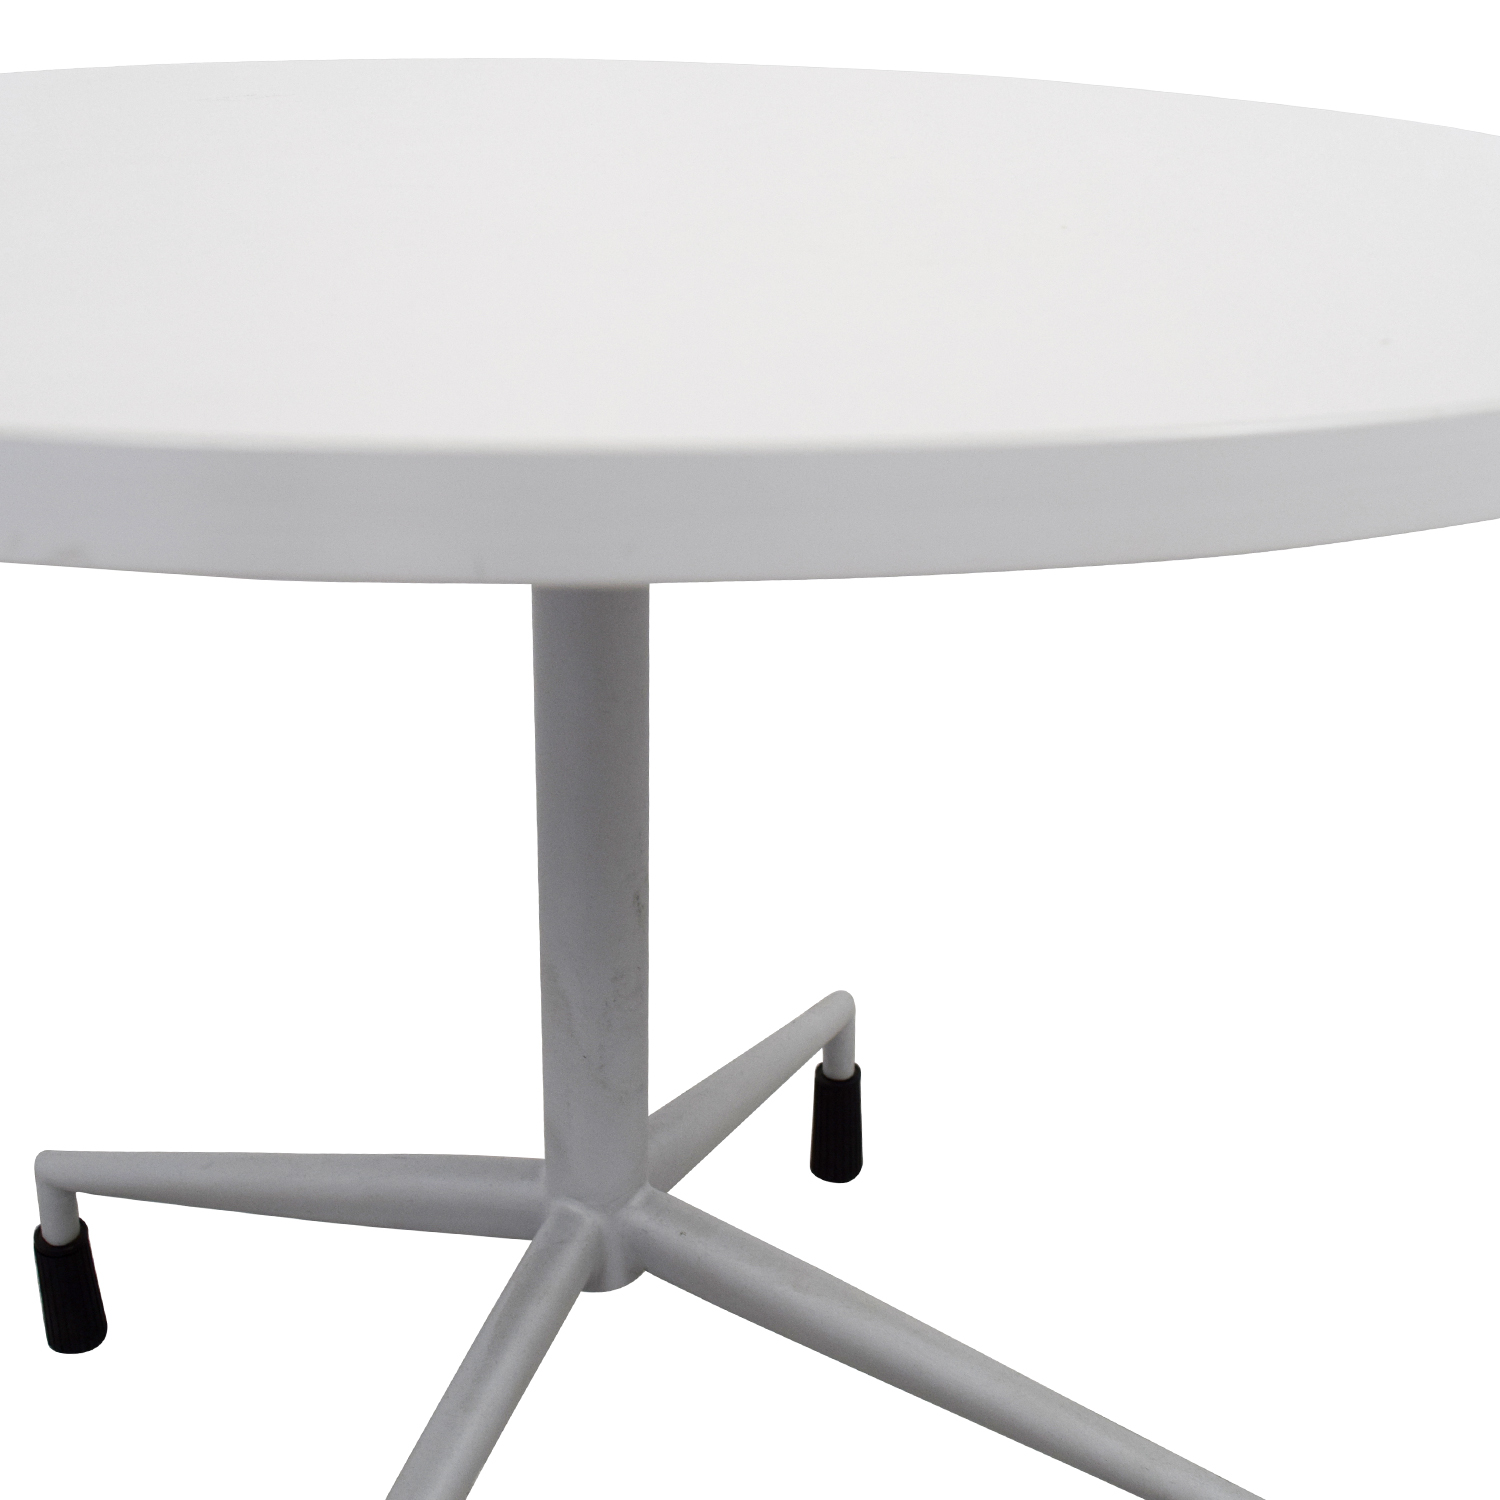 71 off white round table with leg base tables for Off white round table